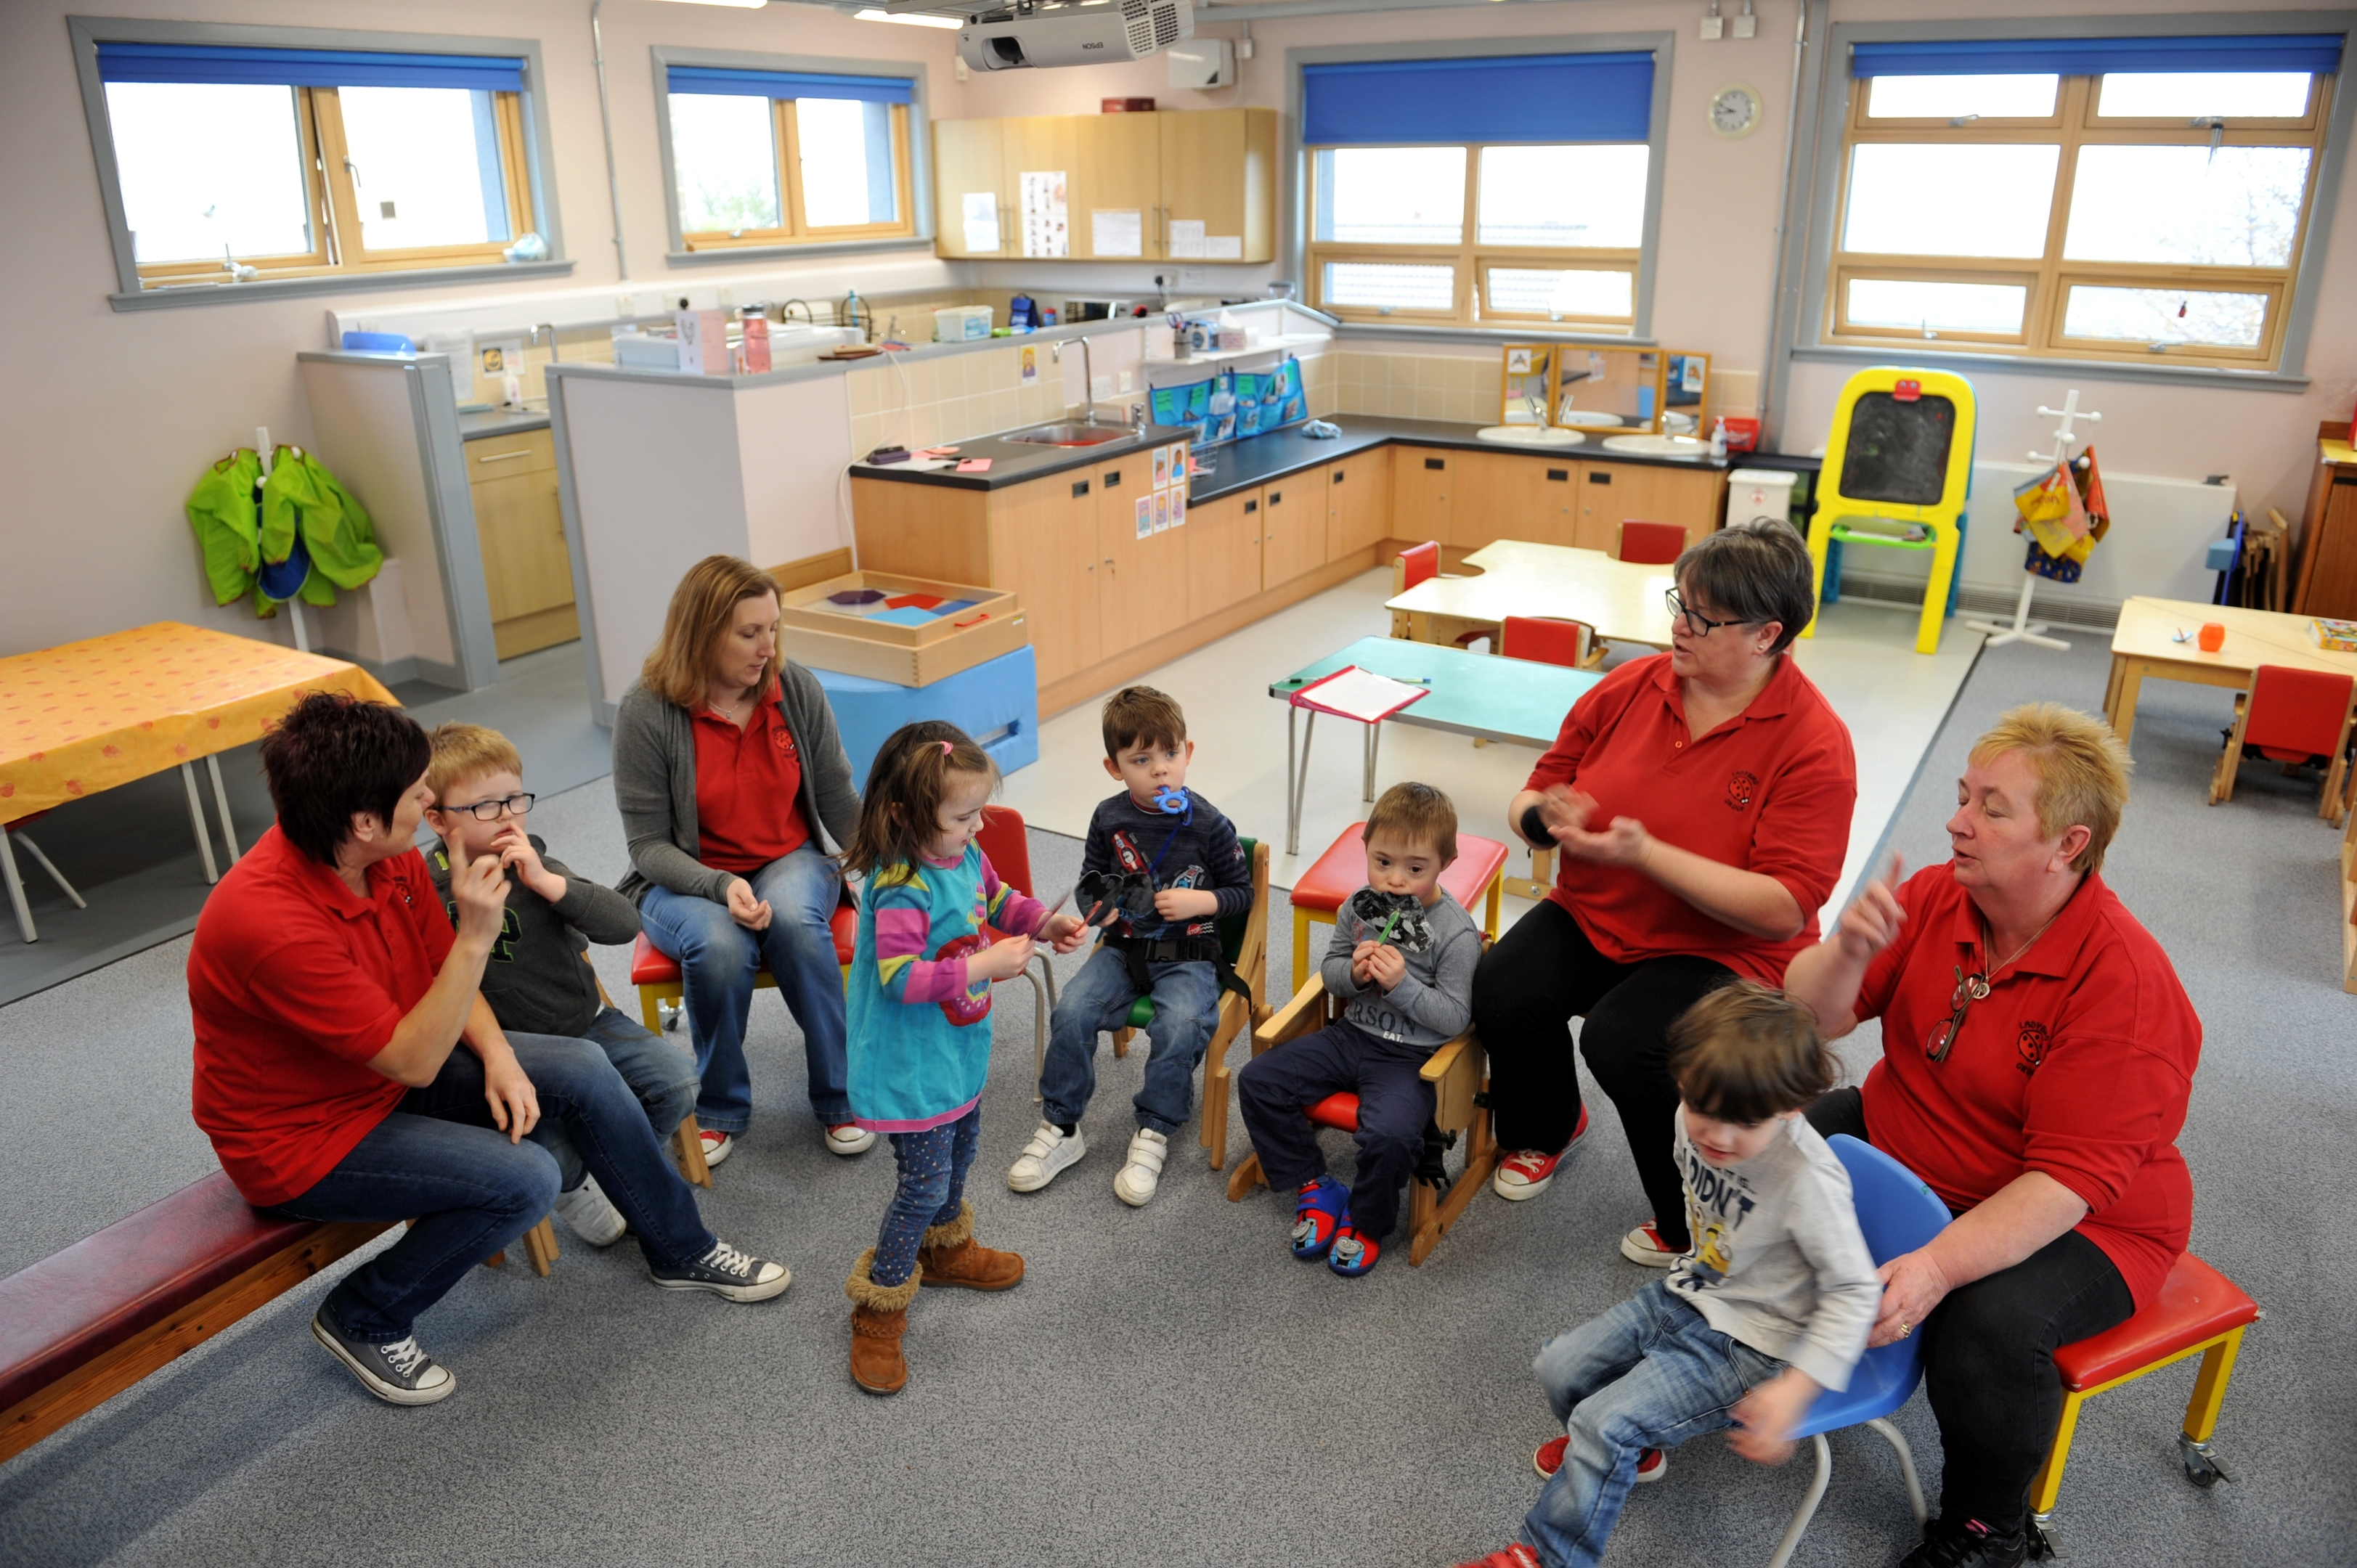 Ladybird Nursery, Lossiemouth, inside their new premises at St Gerardine's School, Lossiemouth.